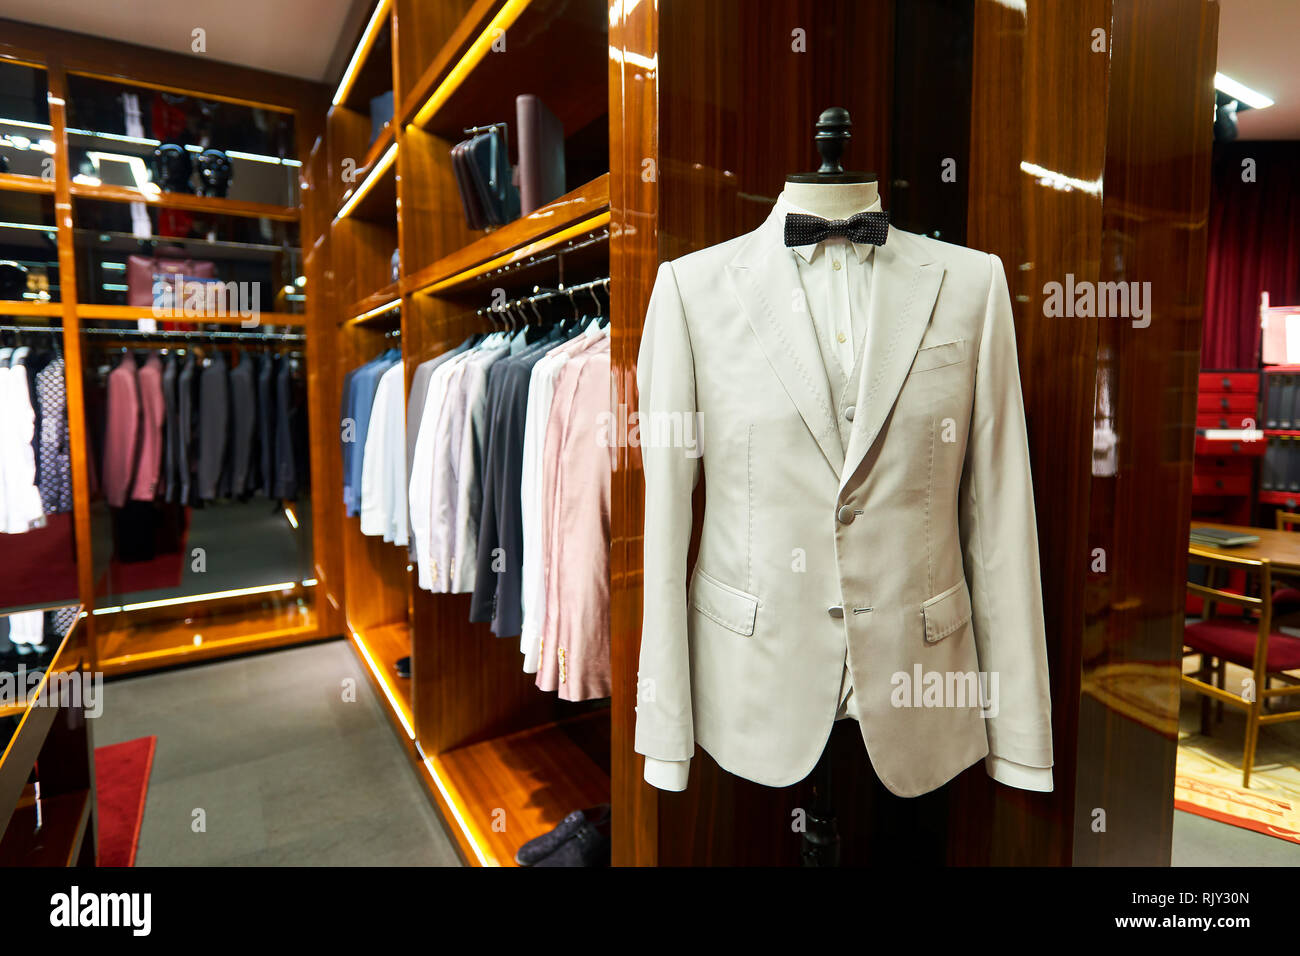 HONG KONG - JANUARY 27, 2016: interior of Dolce & Gabbana store. Dolce & Gabbana is an entry level fashion house founded in 1985 in Legnano by Italian - Stock Image